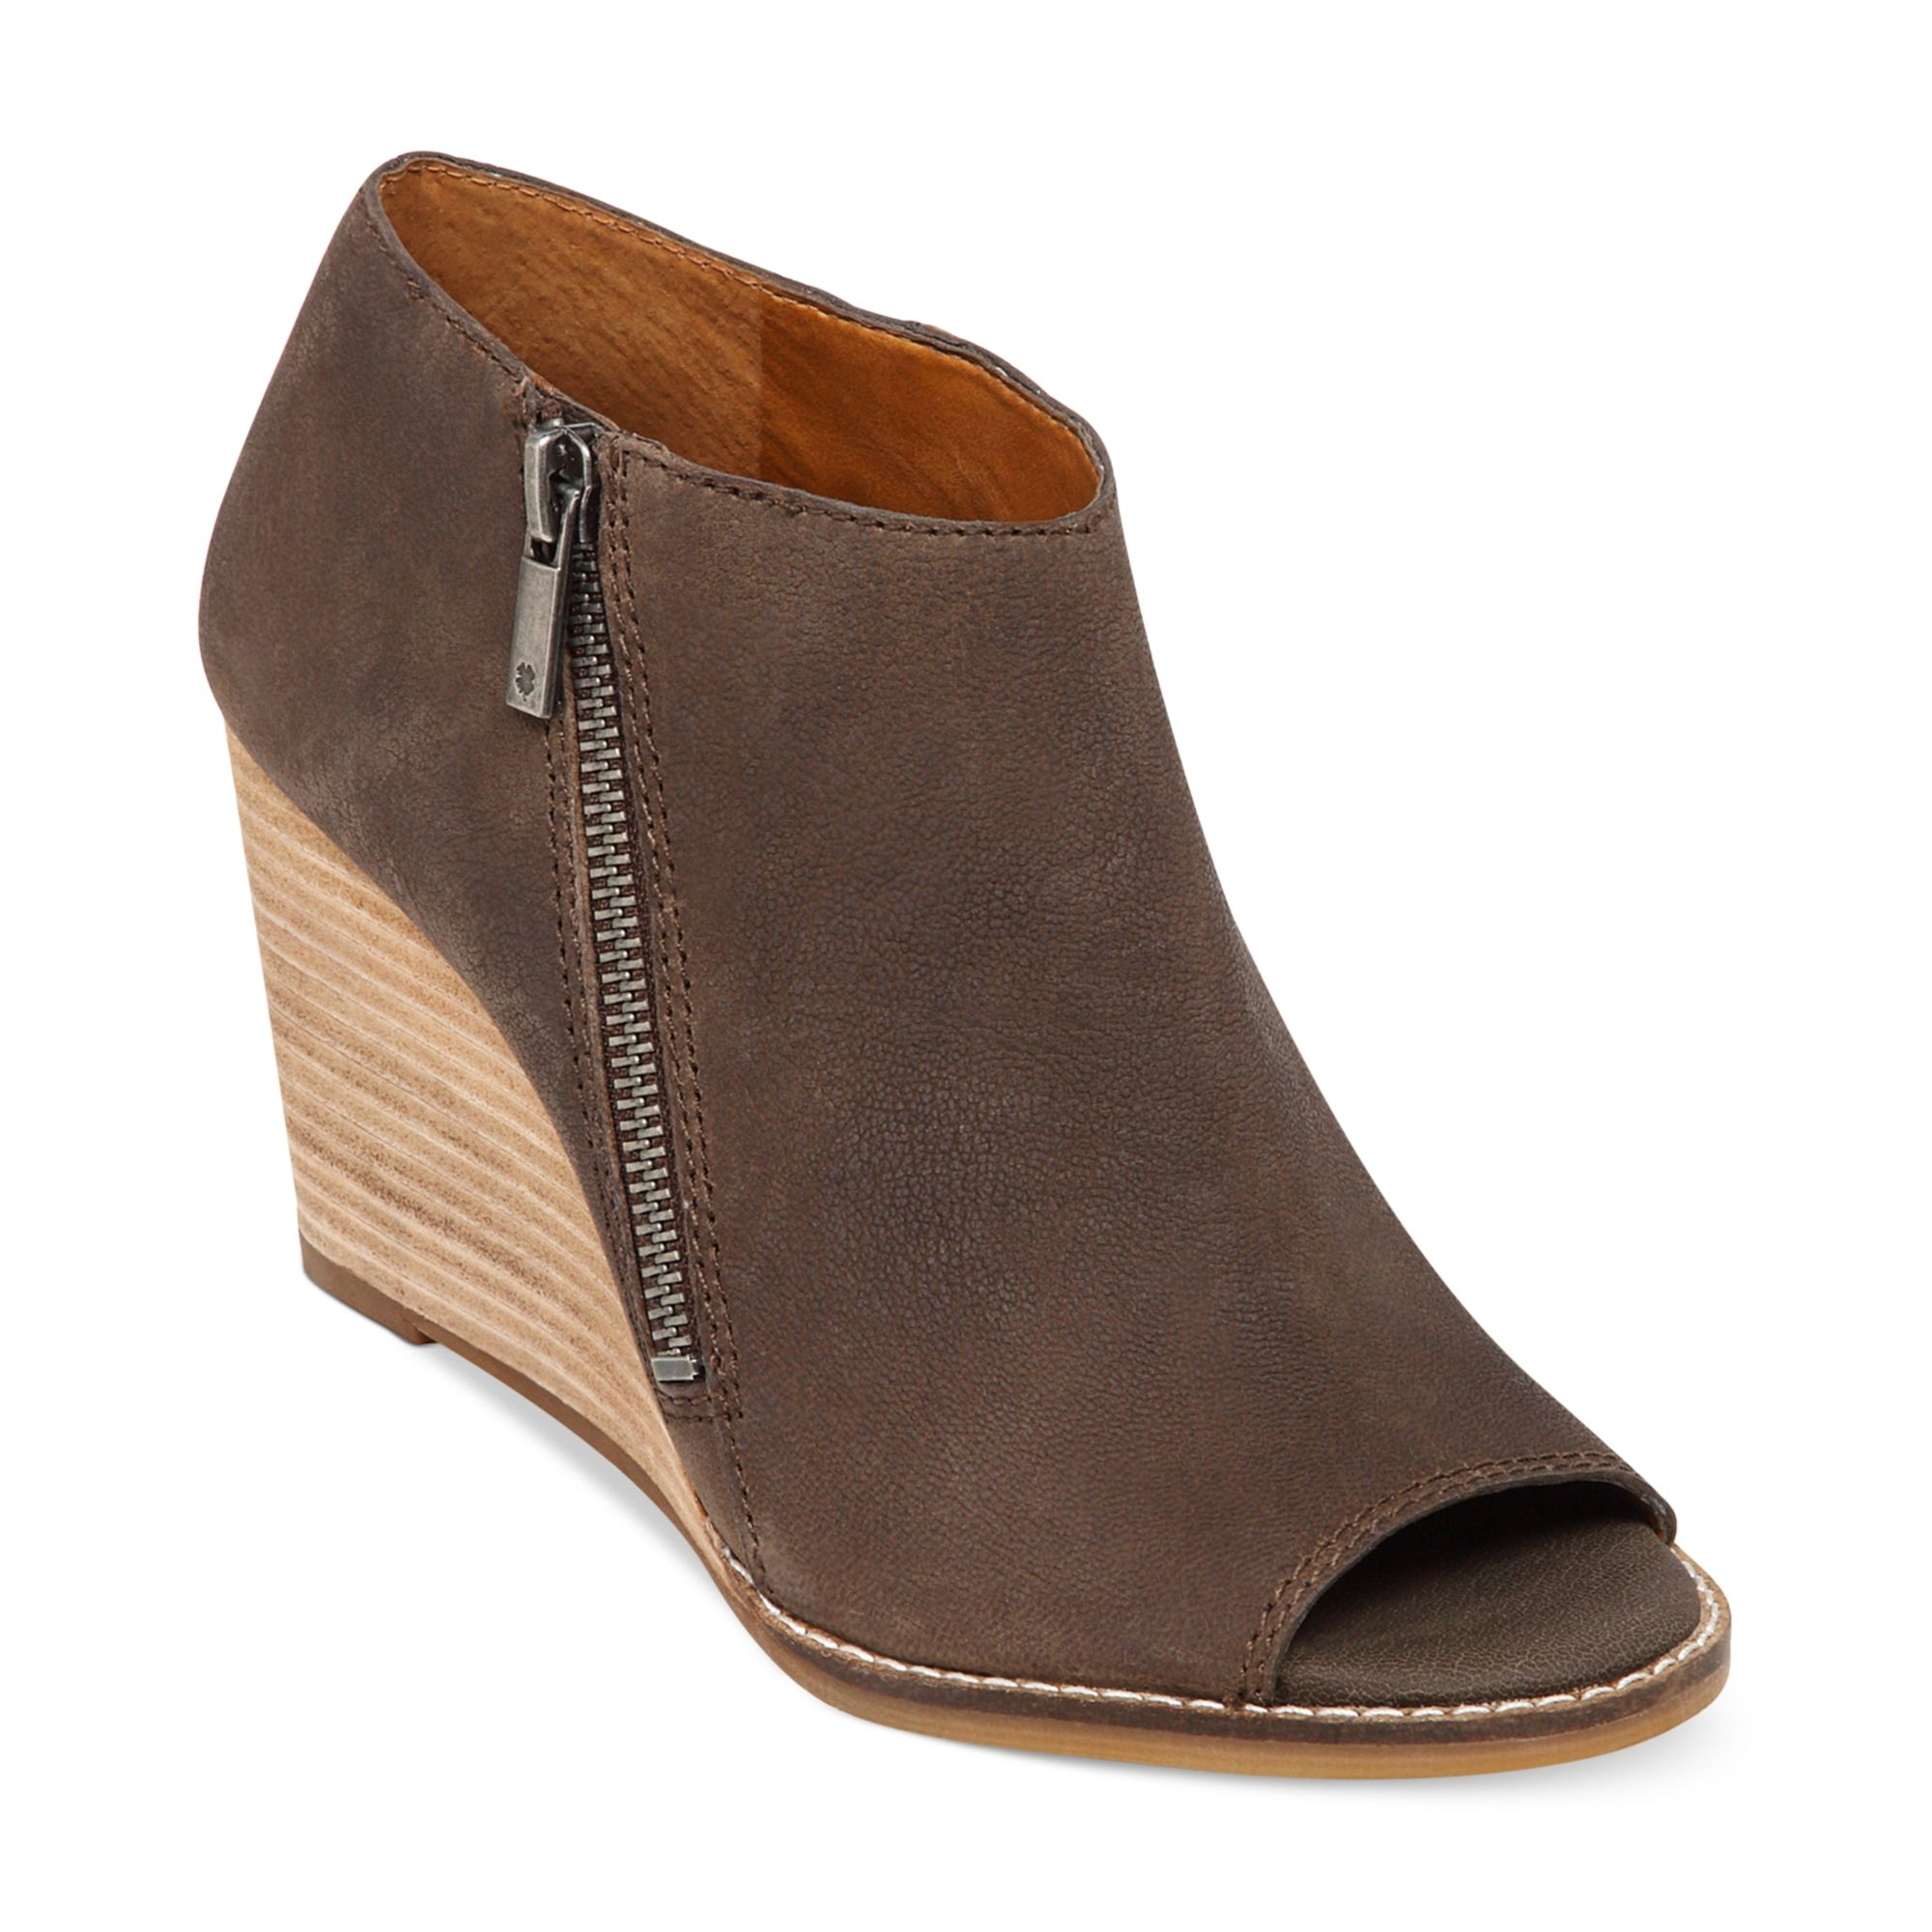 Shop eternal-sv.tk for women's and men's sustainable handcrafted vegetable tanned leather shoes and boots for everyday lifestyle. Free shipping and returns in the U.S.